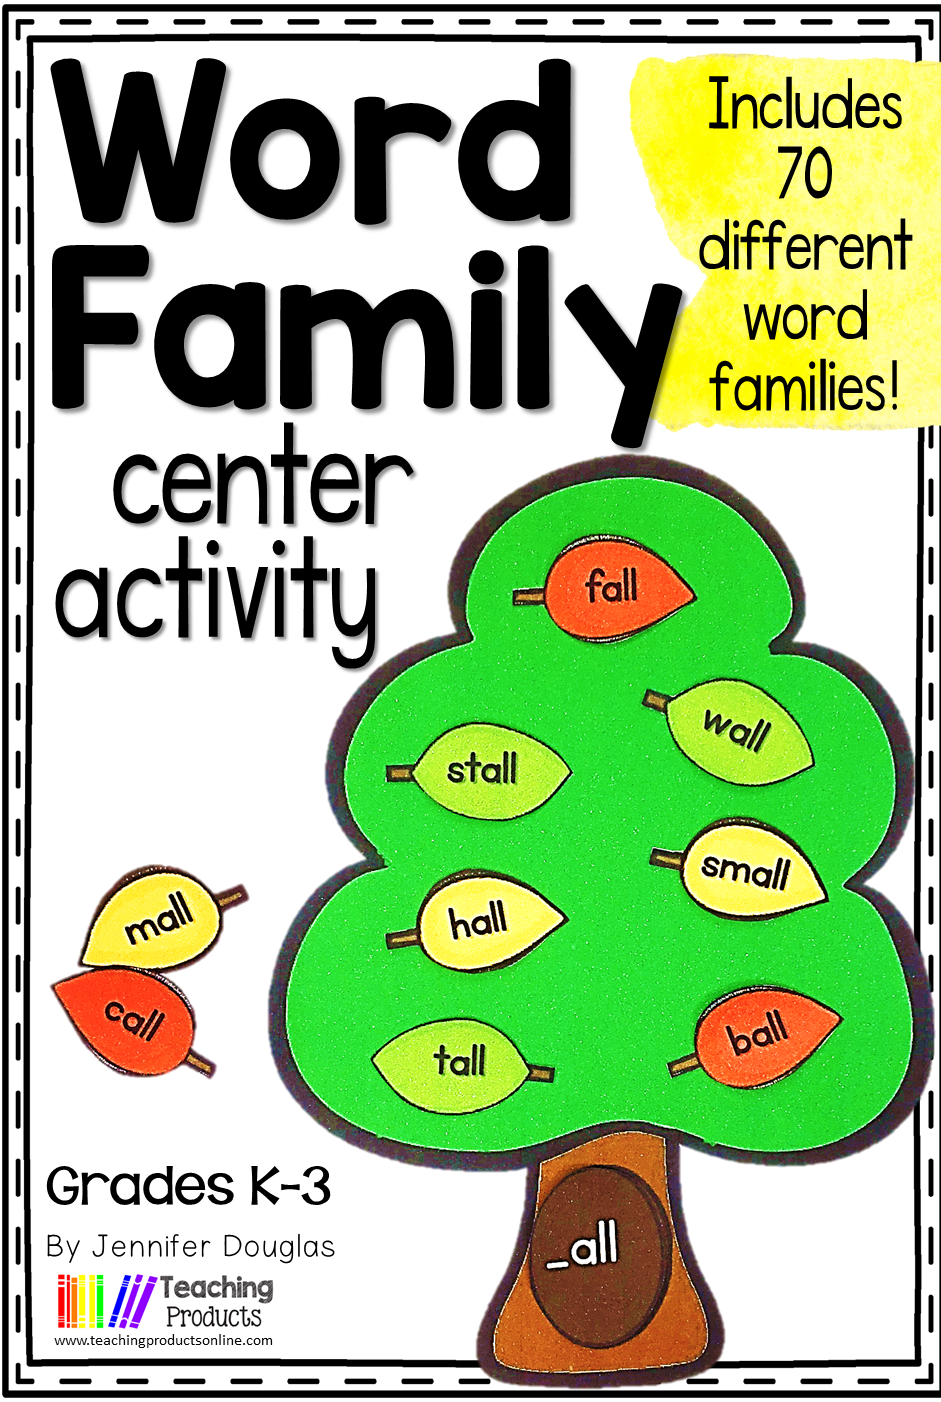 Word Family Center Activities   Word family centers, Word ...